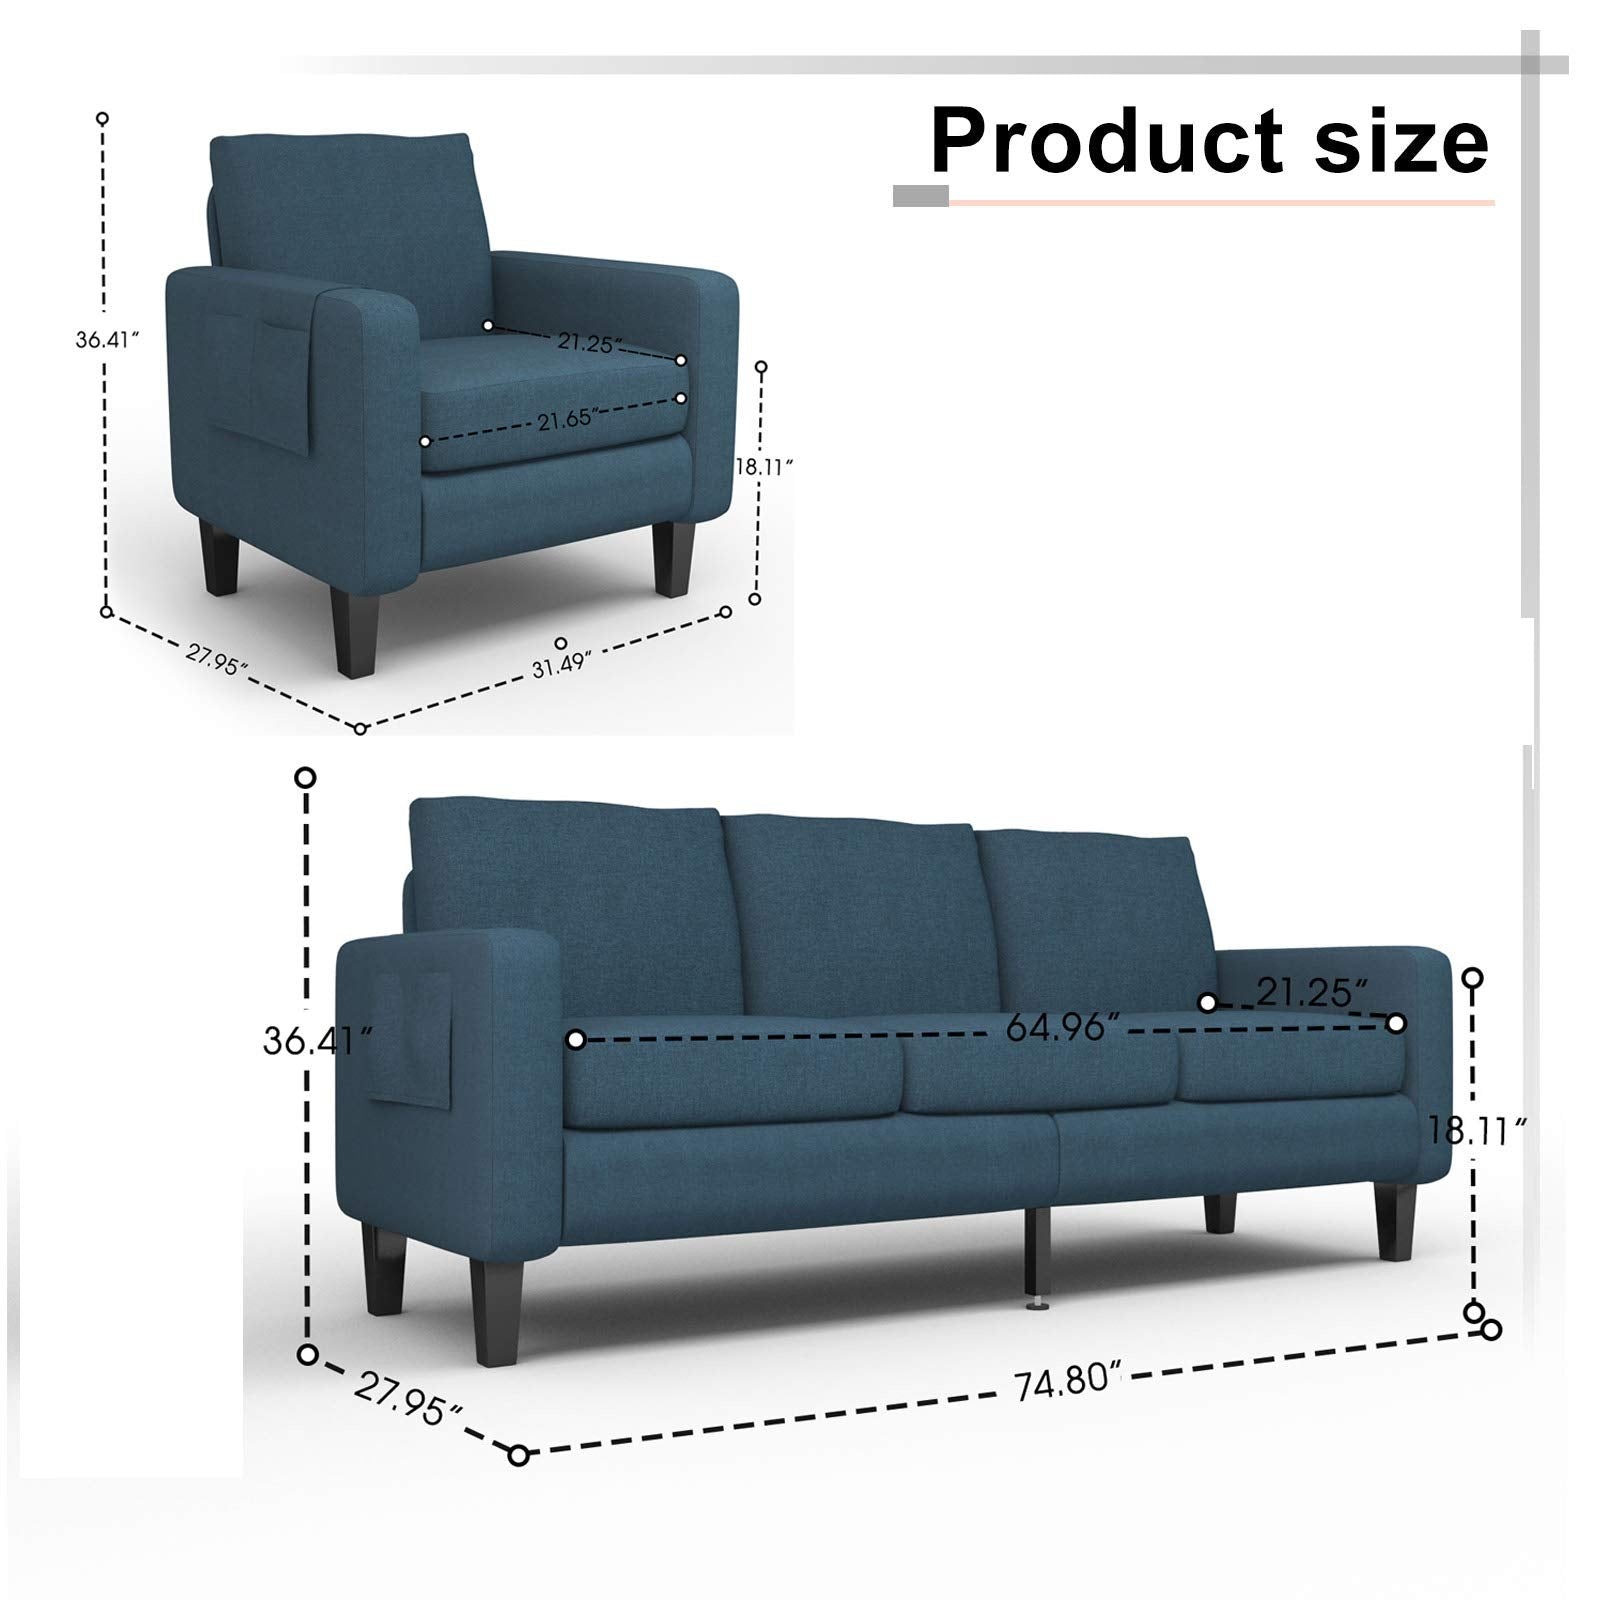 Office Bedroom Mecor 2 Piece Living Room Sofa Set Modern Fabric Couch Furniture Upholstered Single Sofa Chair and Loveseat for Living Room Apartment and Small Space